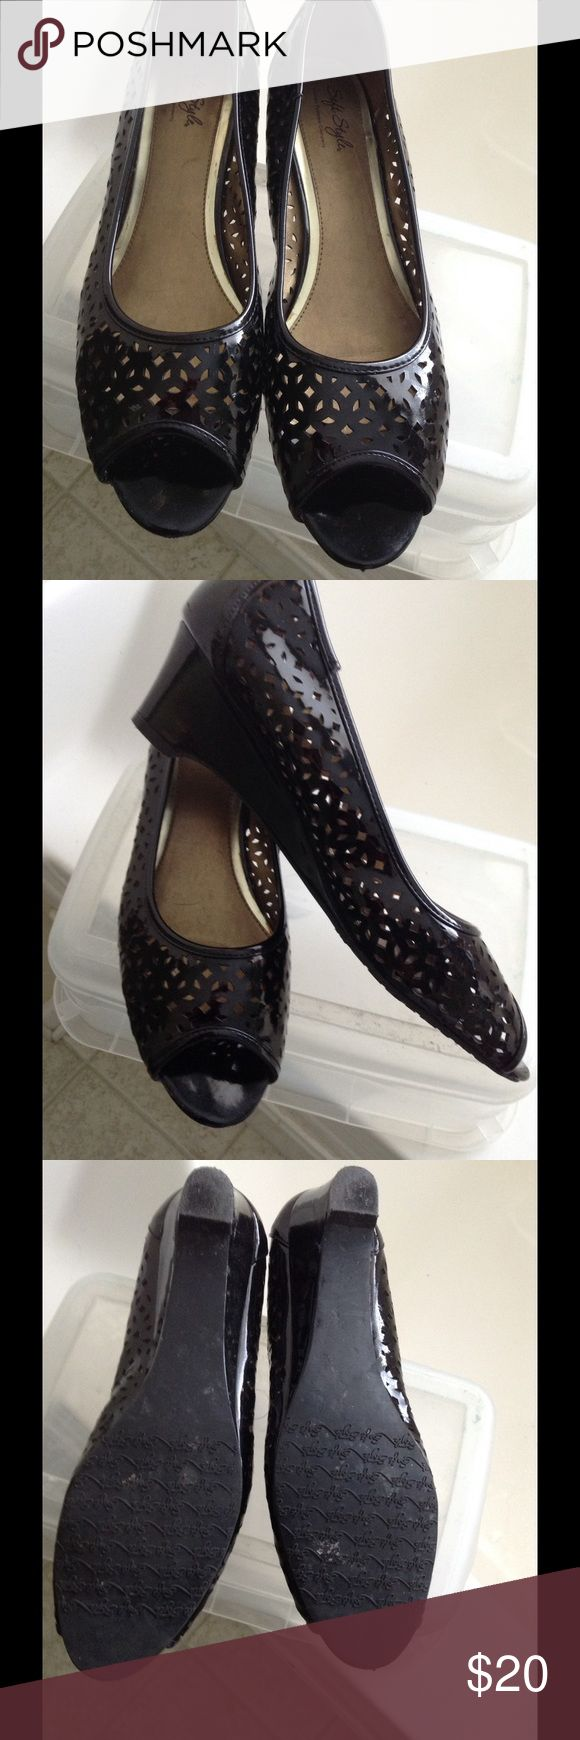 Preloved peep toe Soft Style by Hushpuppies These are are perfect low wedge for work. They are made of a manmade material Hush Puppies Shoes